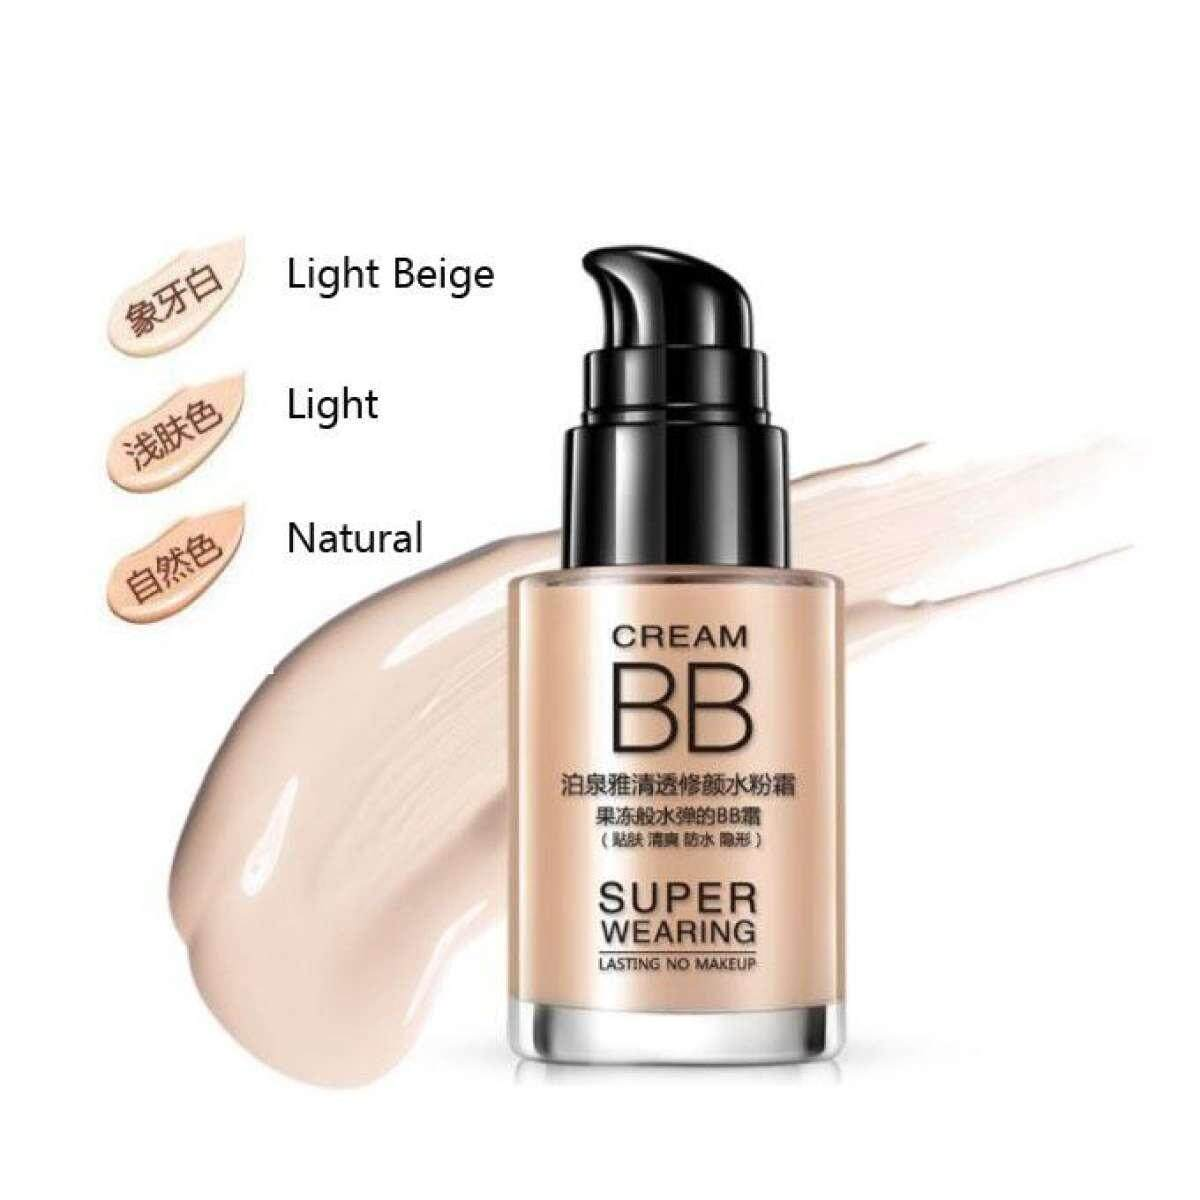 Face Makeup Bb Cc Cream Buy At Natural Bioaqua Persistent Foundation Whitening And Moisturizing Concealer Invisible Pores Easy On Light